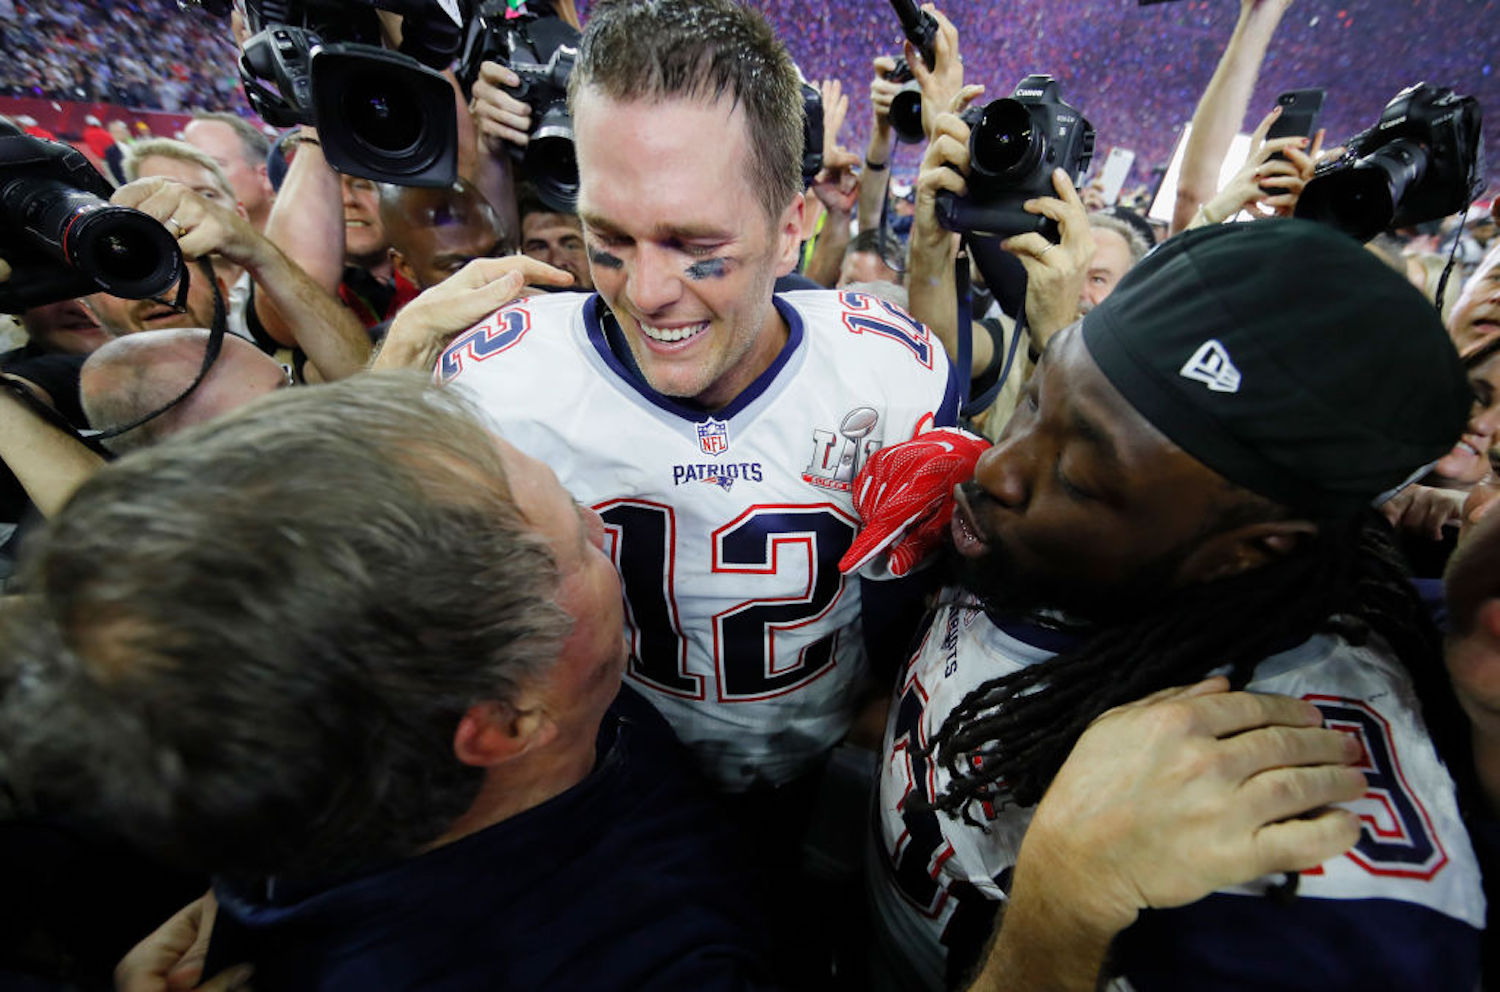 The question of who contributed more to the Patriots dynasty is one that will be debated in New England for decades. What's LeGarrette Blount's answer?